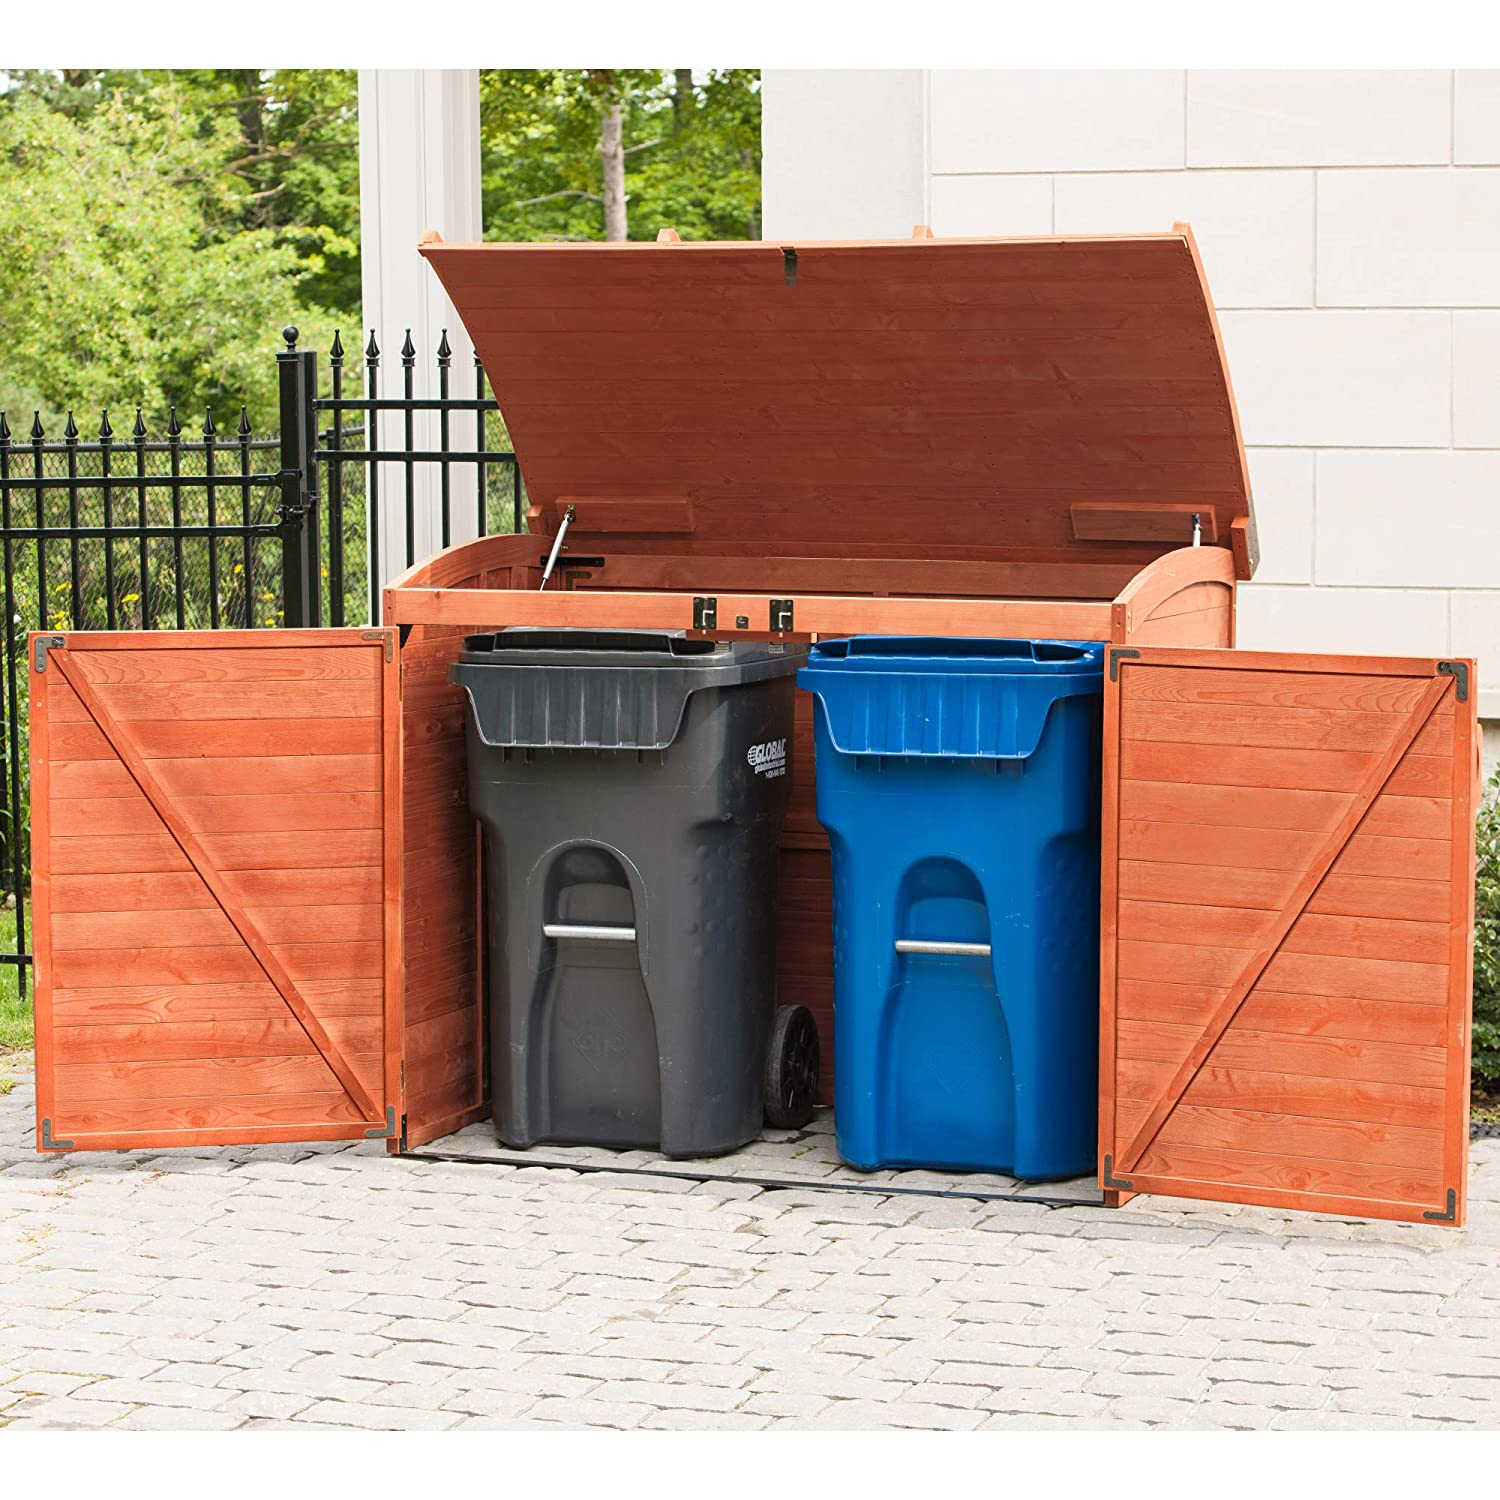 Amazon com leisure season horizontal refuse storage shed solid wood decay resistant trash shed garden outdoor